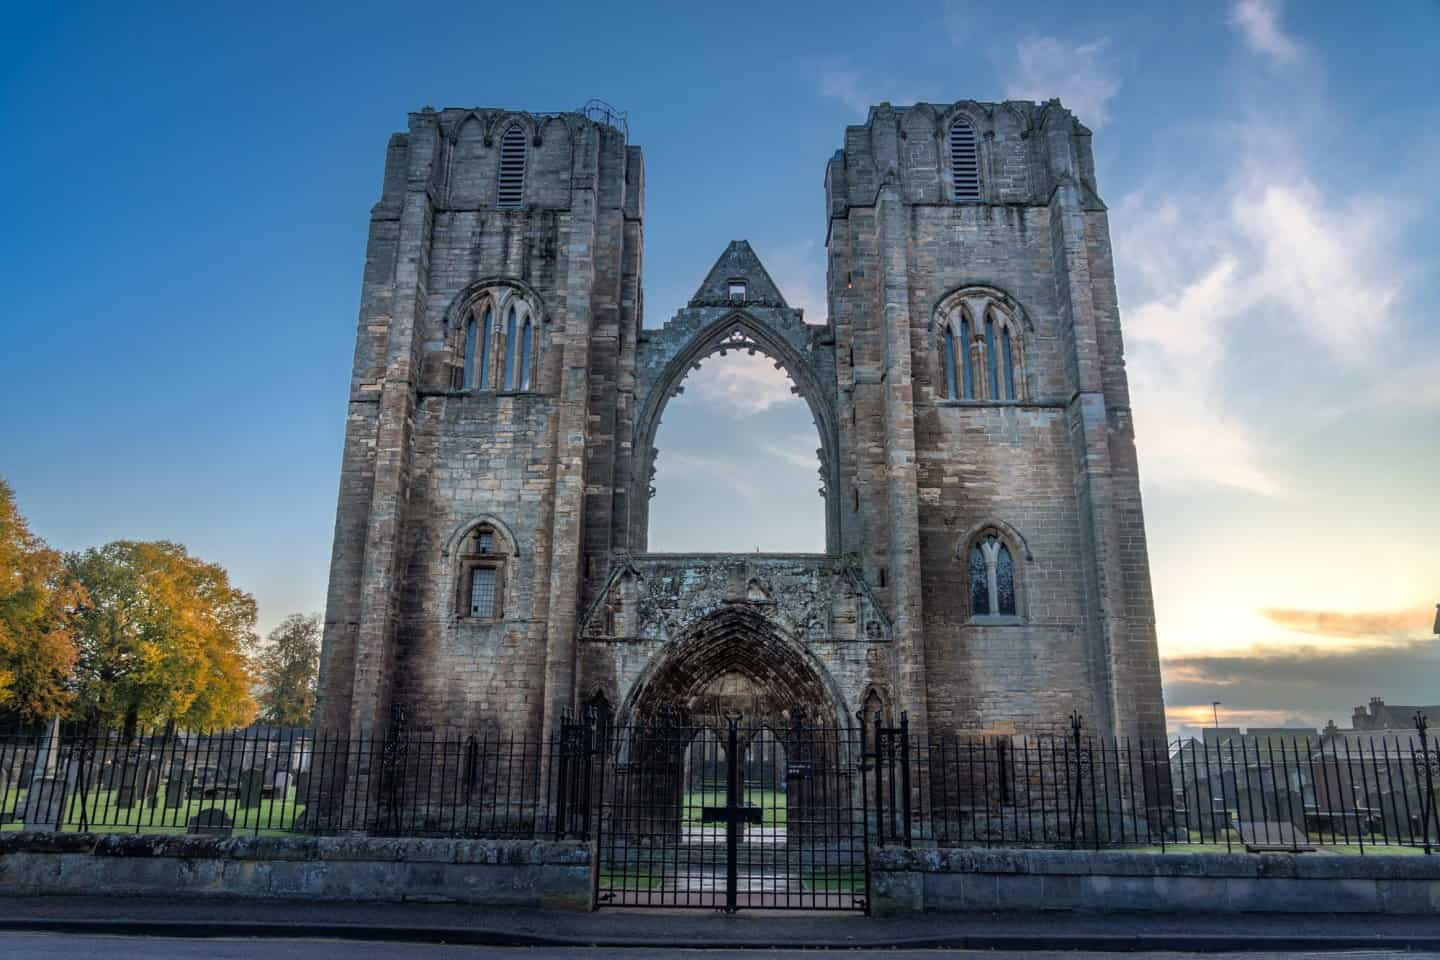 Elgin was one of the biggest surprises during my 10 days in Scotland.  Here is the front gates of Elgin Cathedral at sunrise.